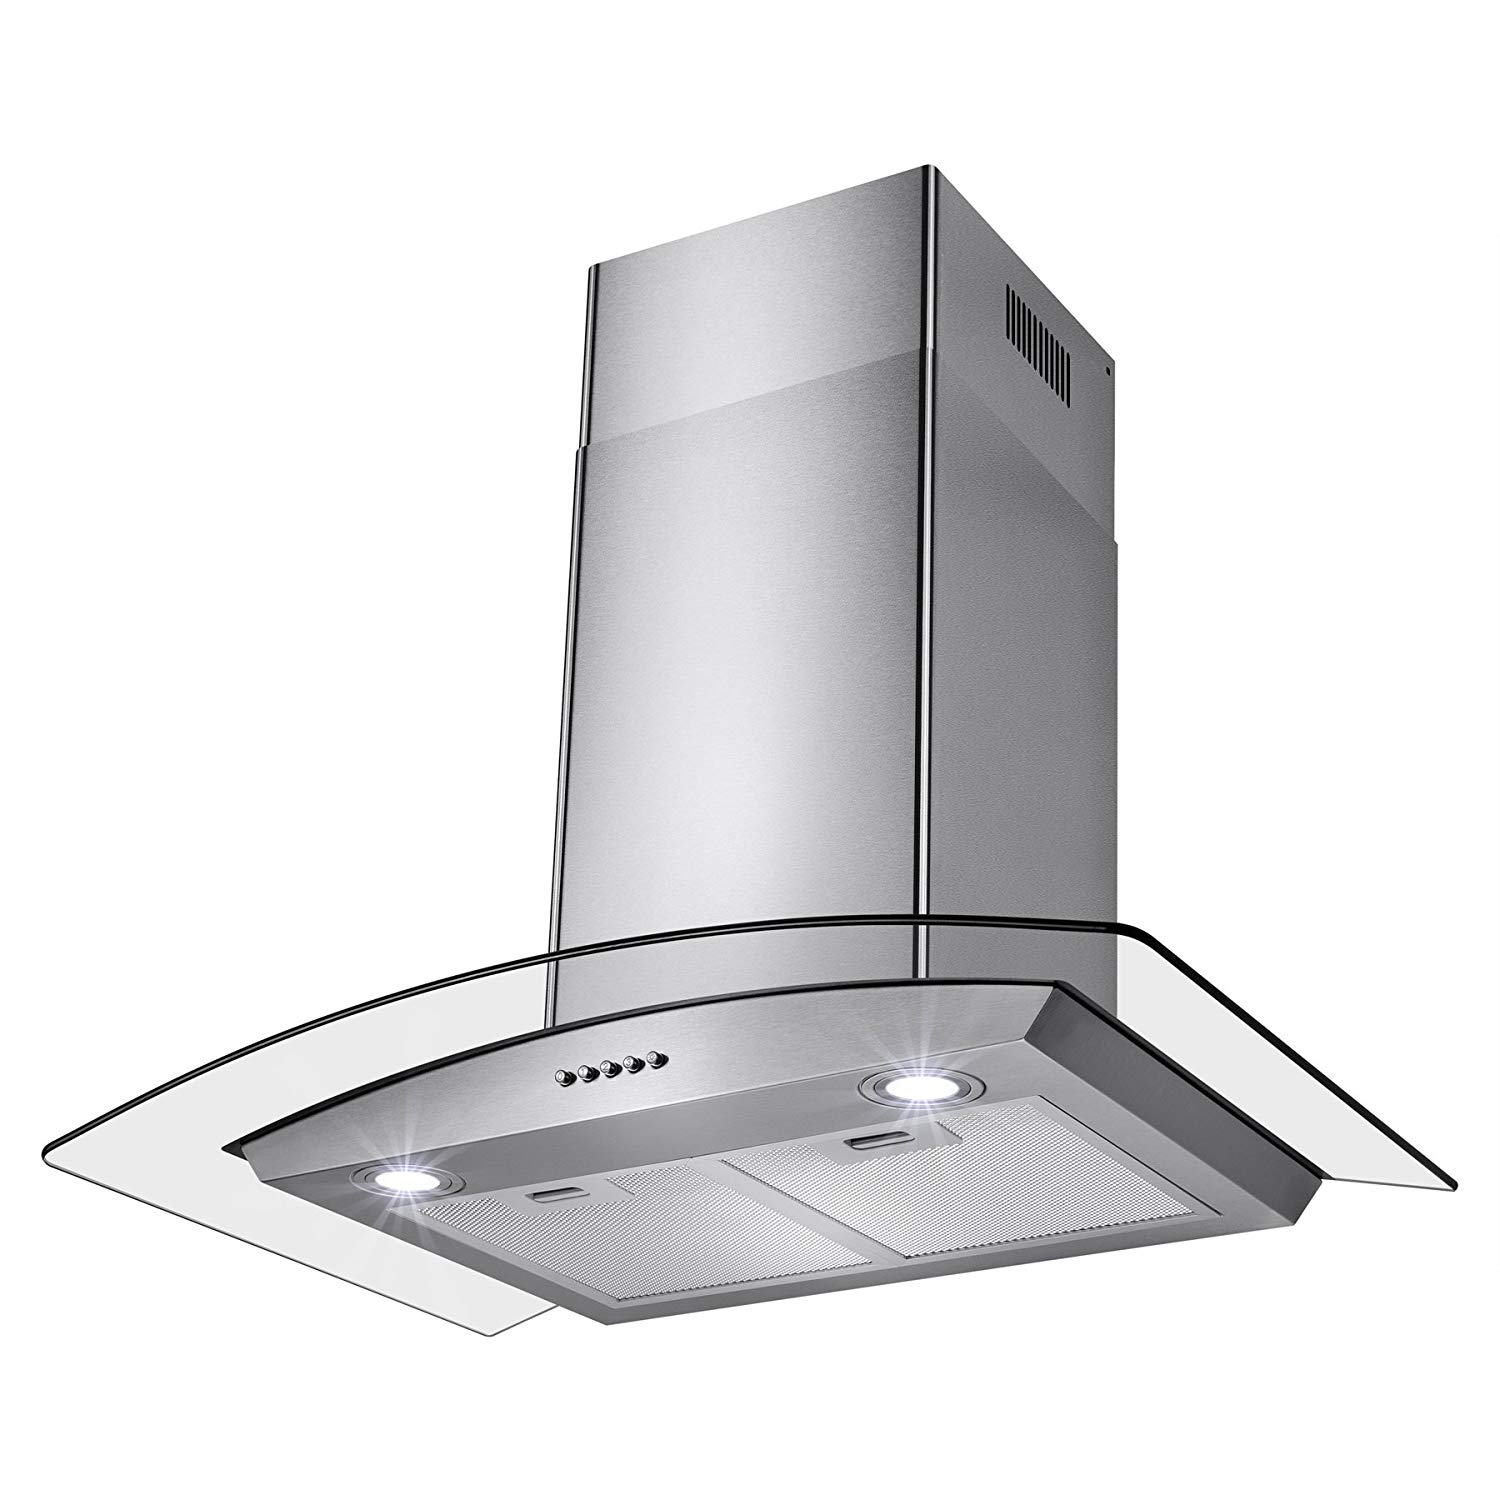 Perfetto kitchen and bath 30-inch convertible range hood